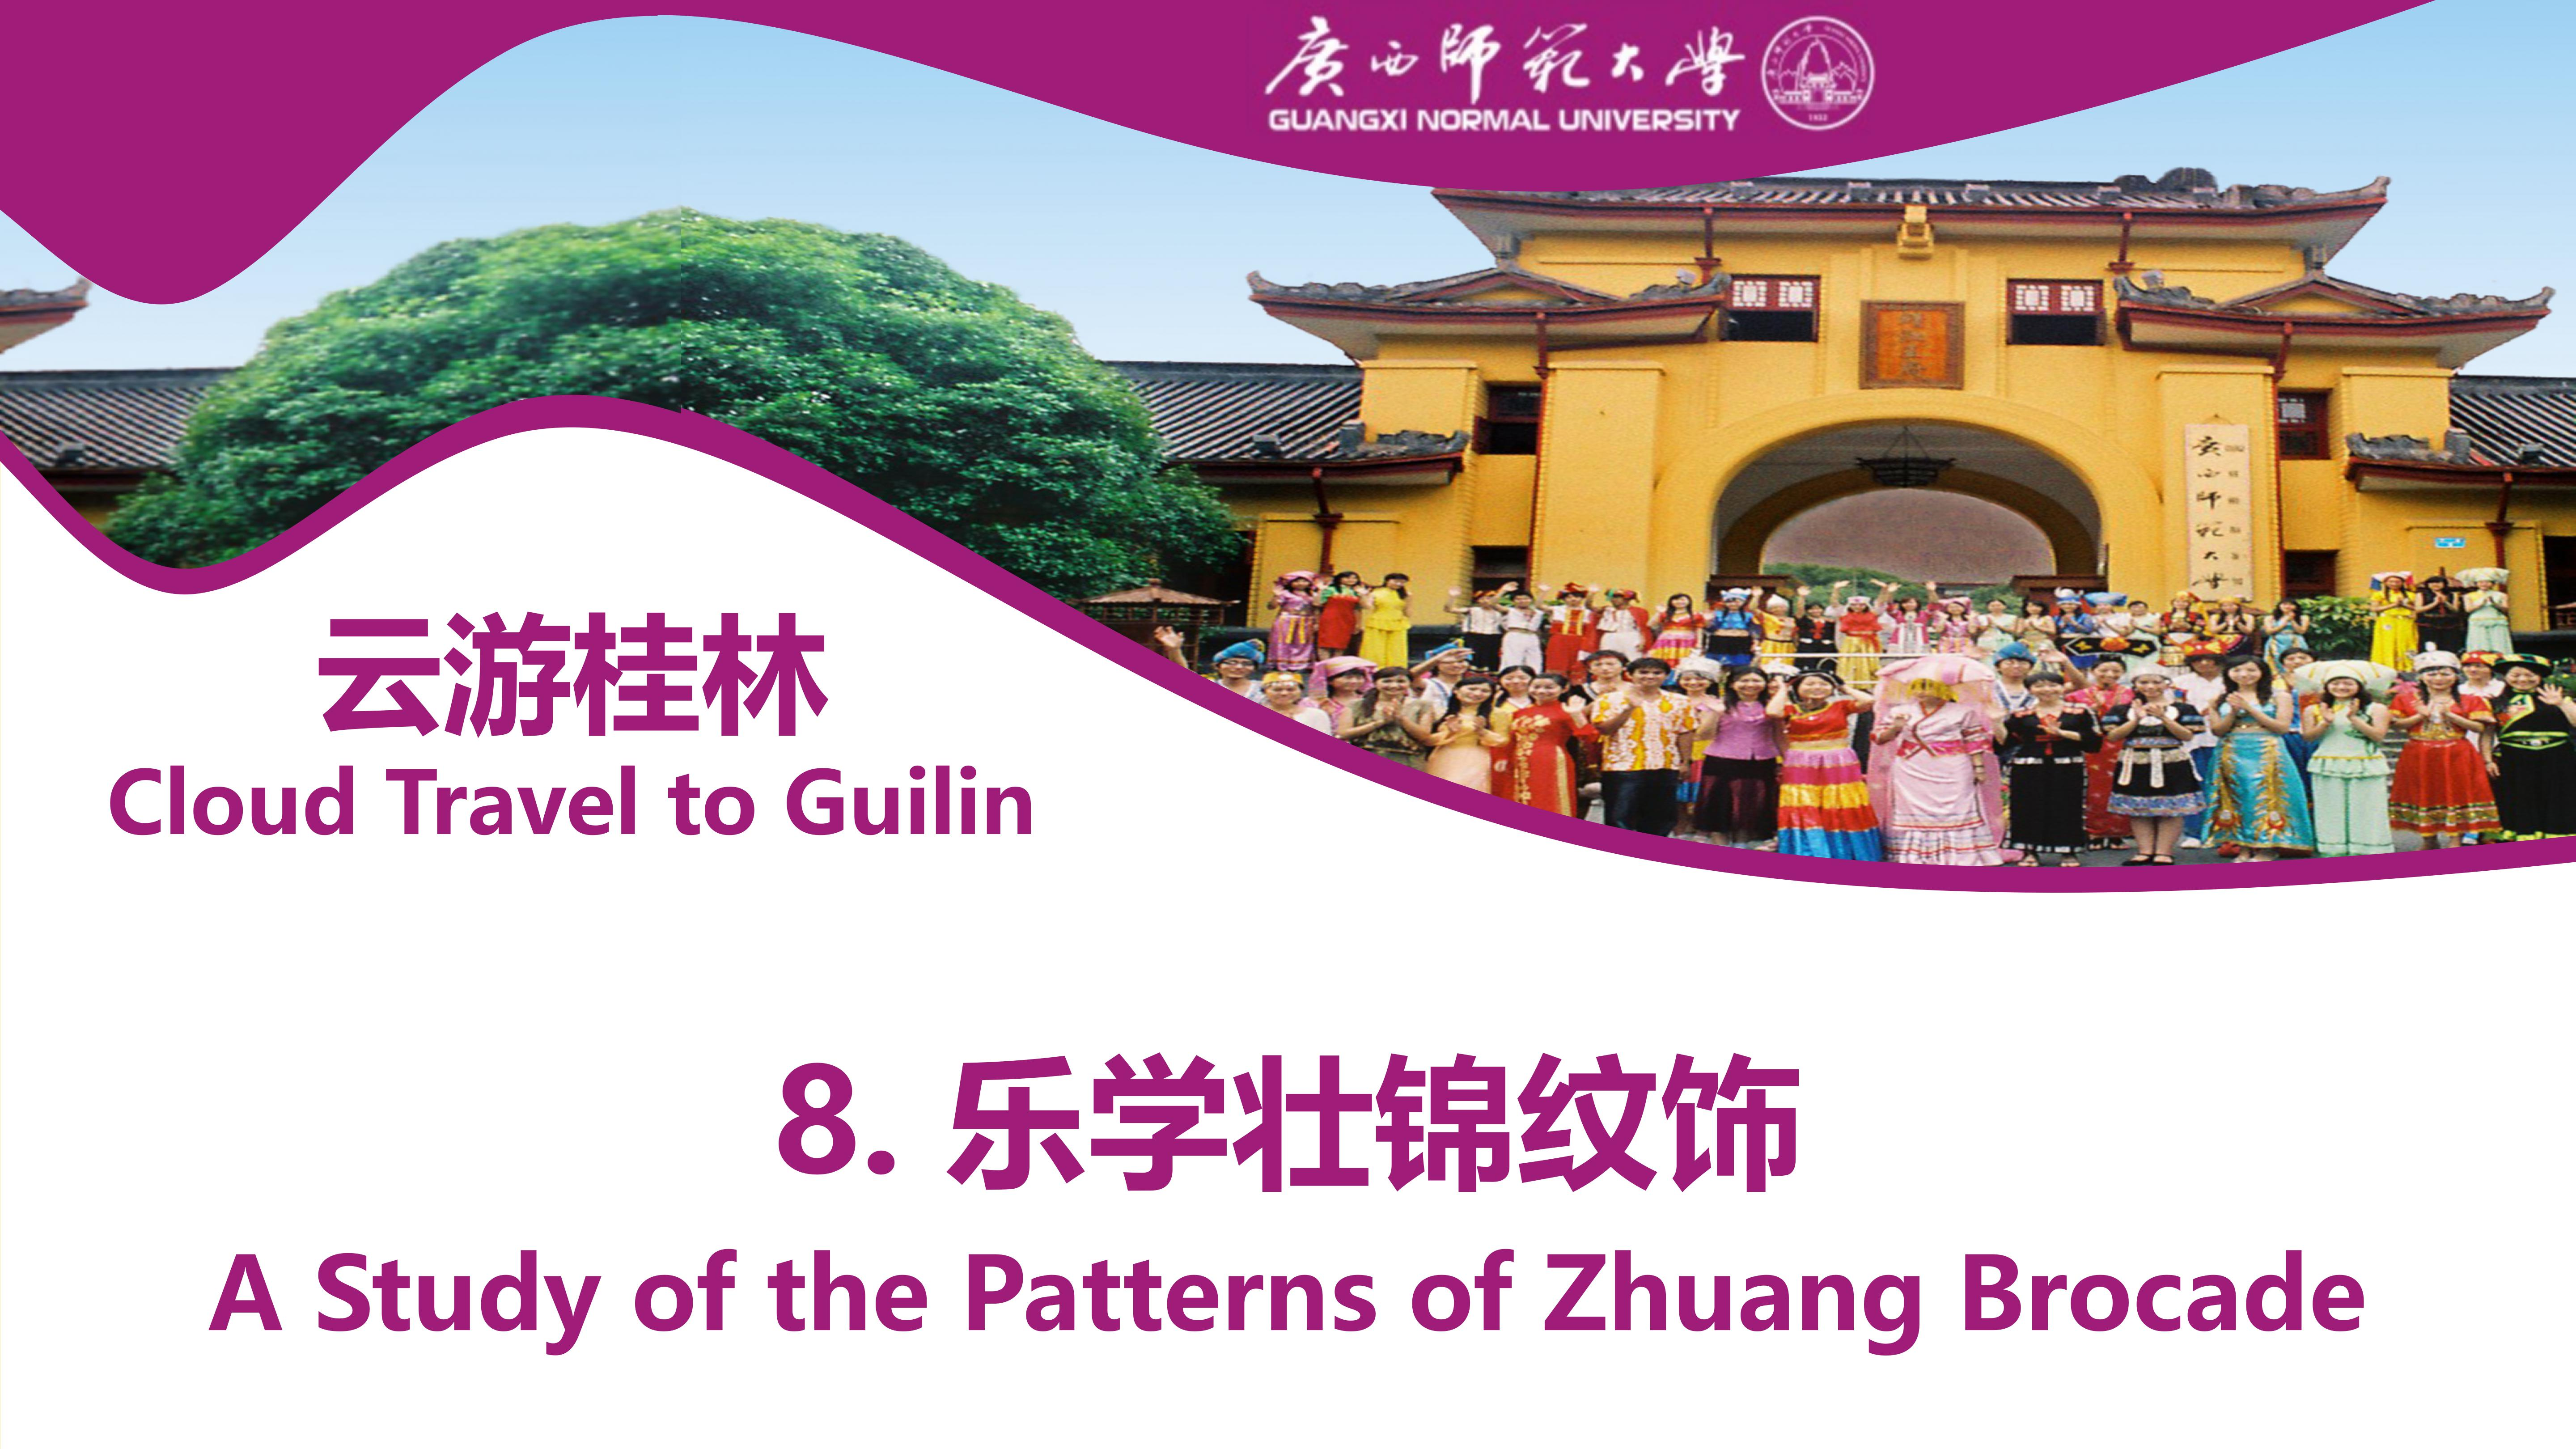 A Study of the Patterns of Zhuang Brocade